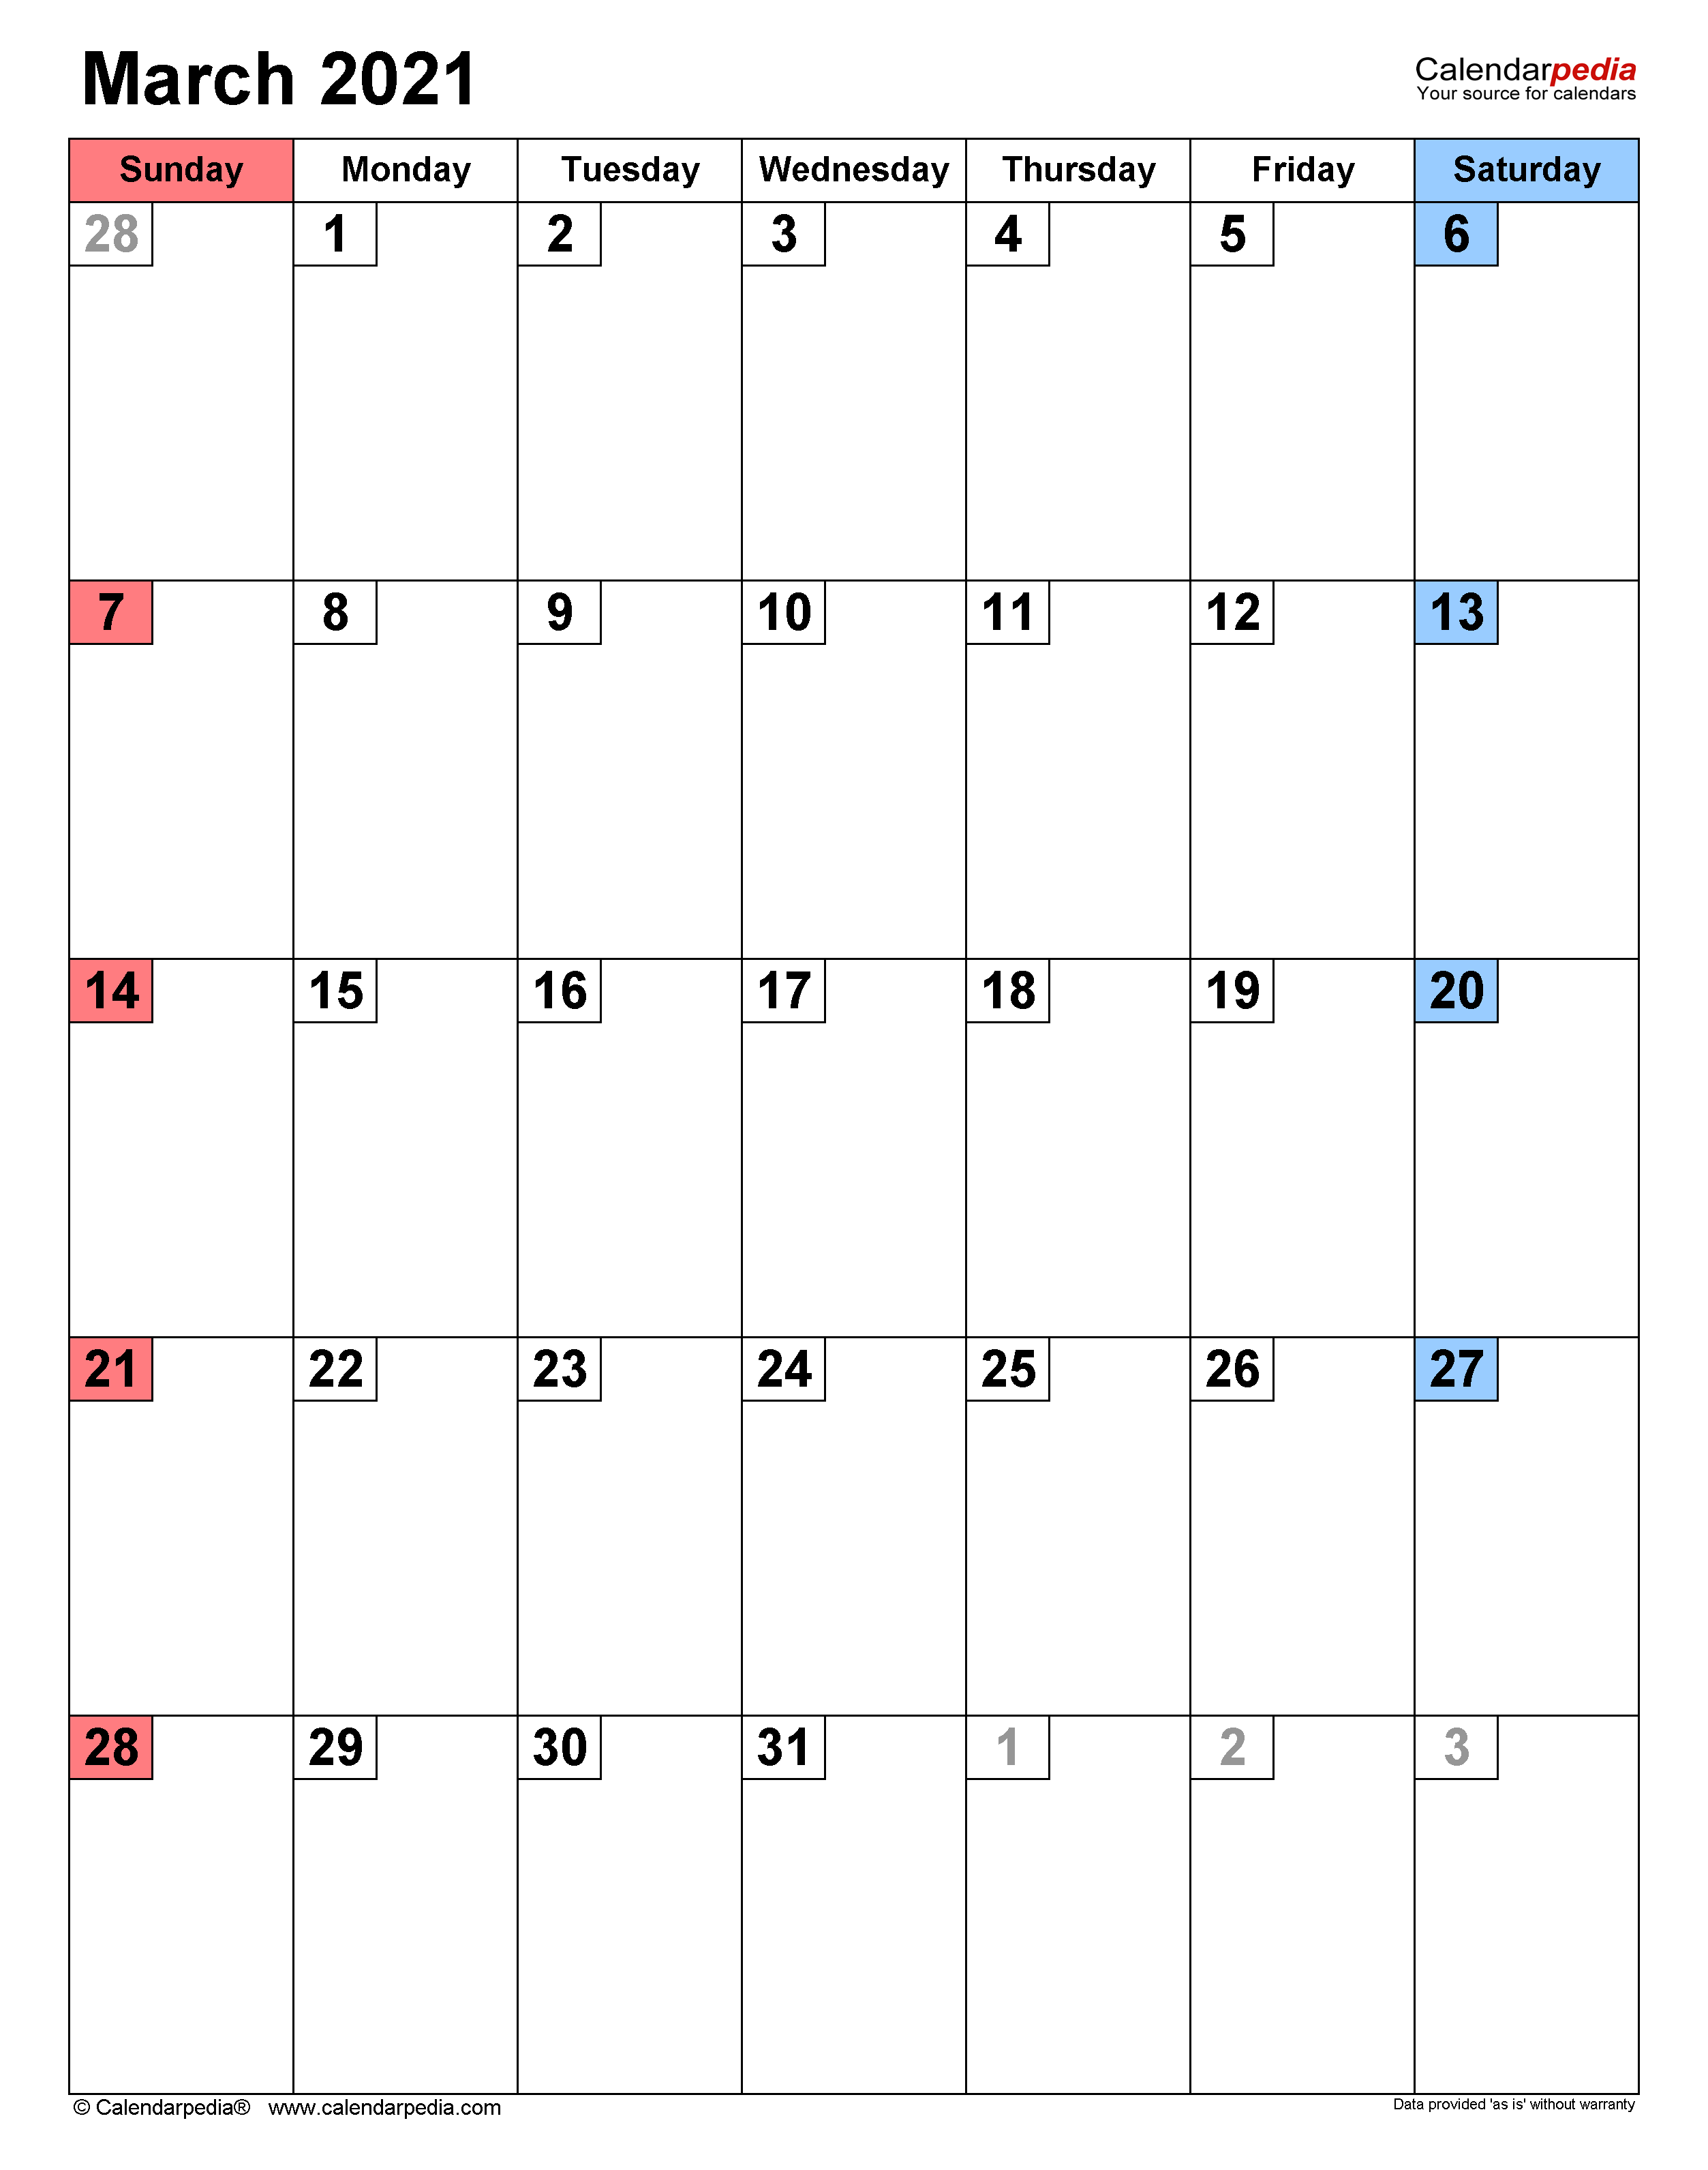 March 2021 Calendar   Templates for Word, Excel and PDF